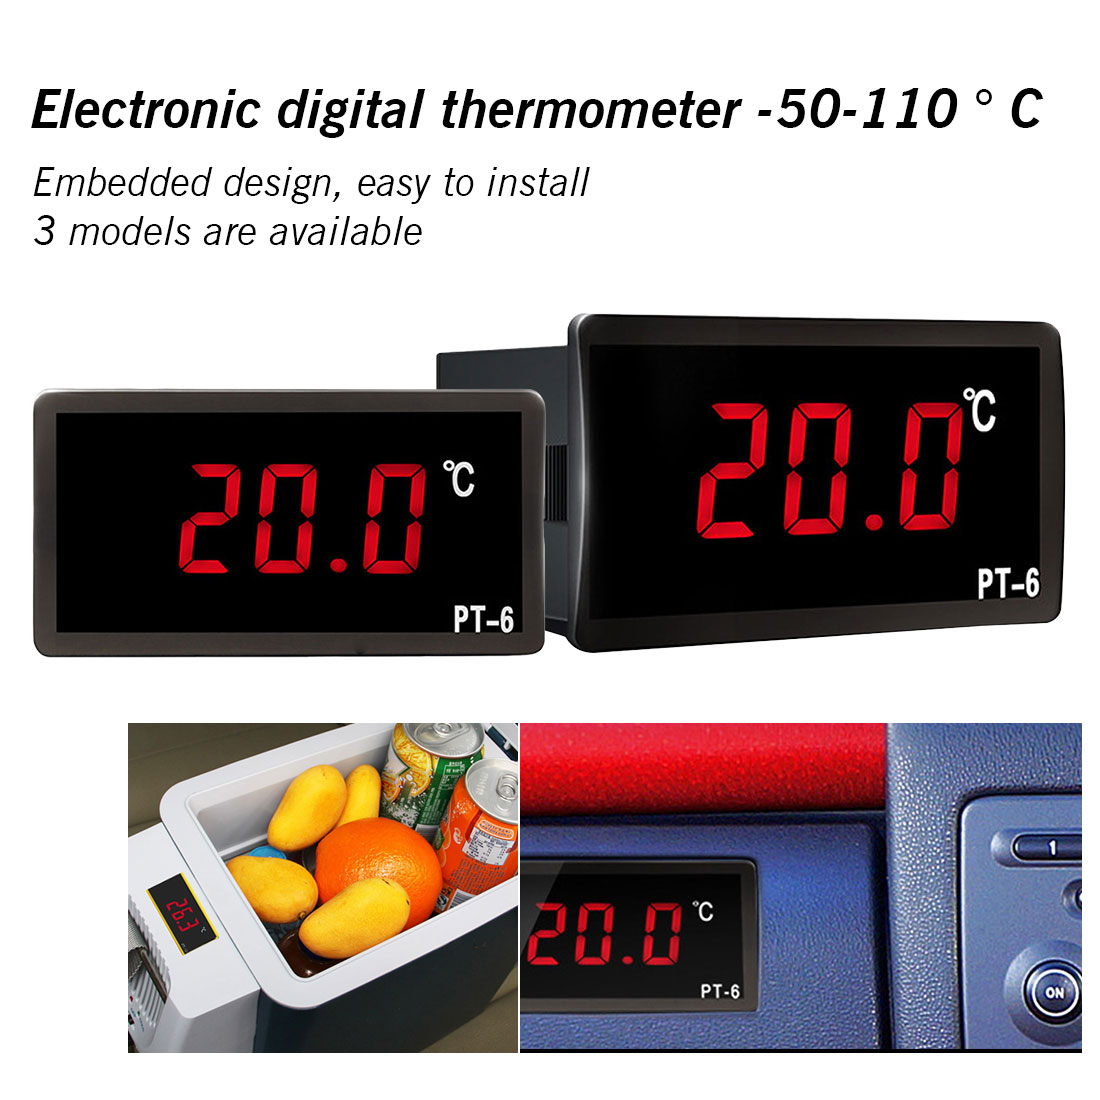 -50~110C Digital Car Thermometer Vehicle Temperature Meter Monitor 12V 24V 110V Automotive Thermometer with NTC Sensor PT-6-50~110C Digital Car Thermometer Vehicle Temperature Meter Monitor 12V 24V 110V Automotive Thermometer with NTC Sensor PT-6